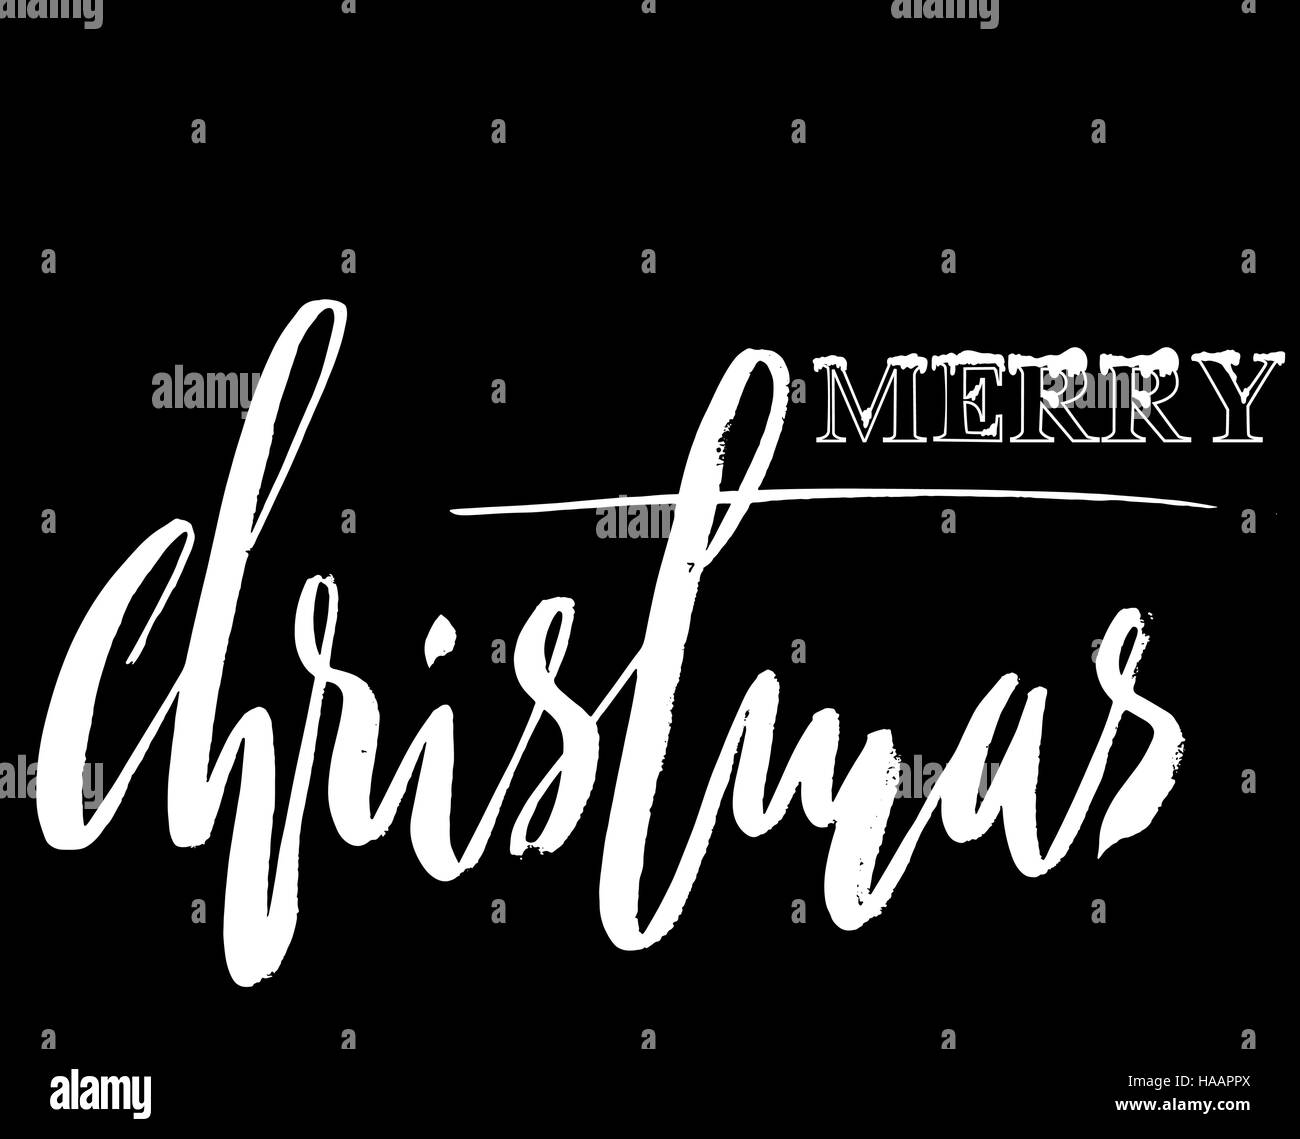 Christmas Greetings Black And White Stock Photos Images Alamy